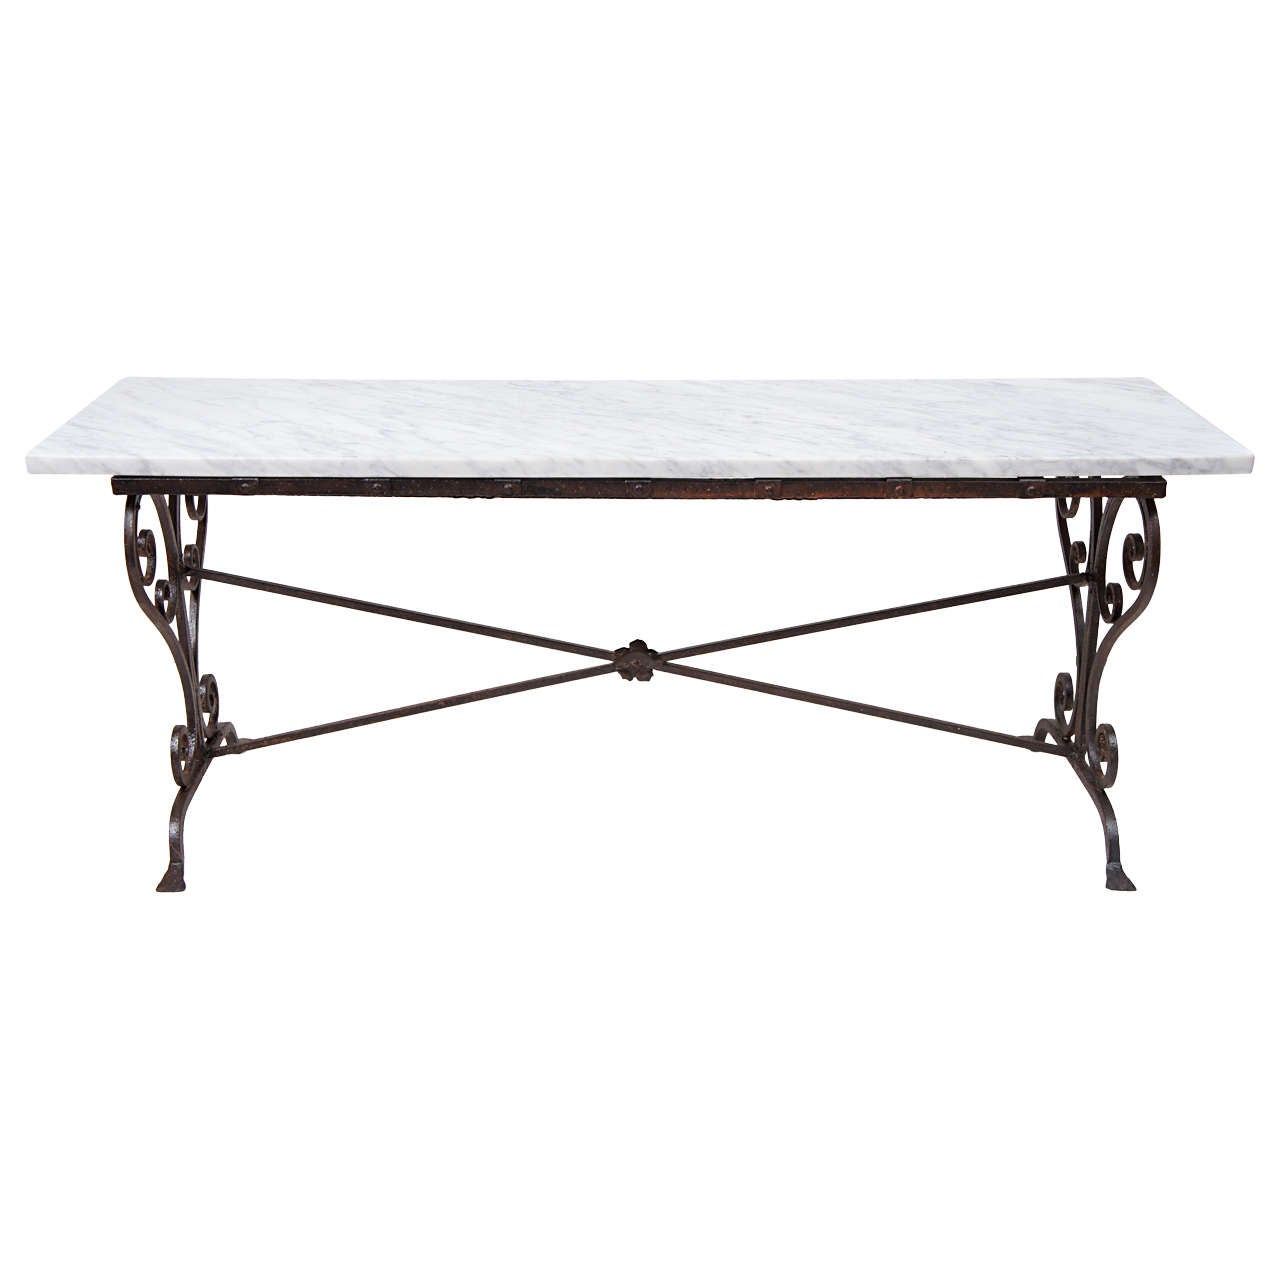 Antique wrought iron marble coffee table at 1stdibs Coffee table antique